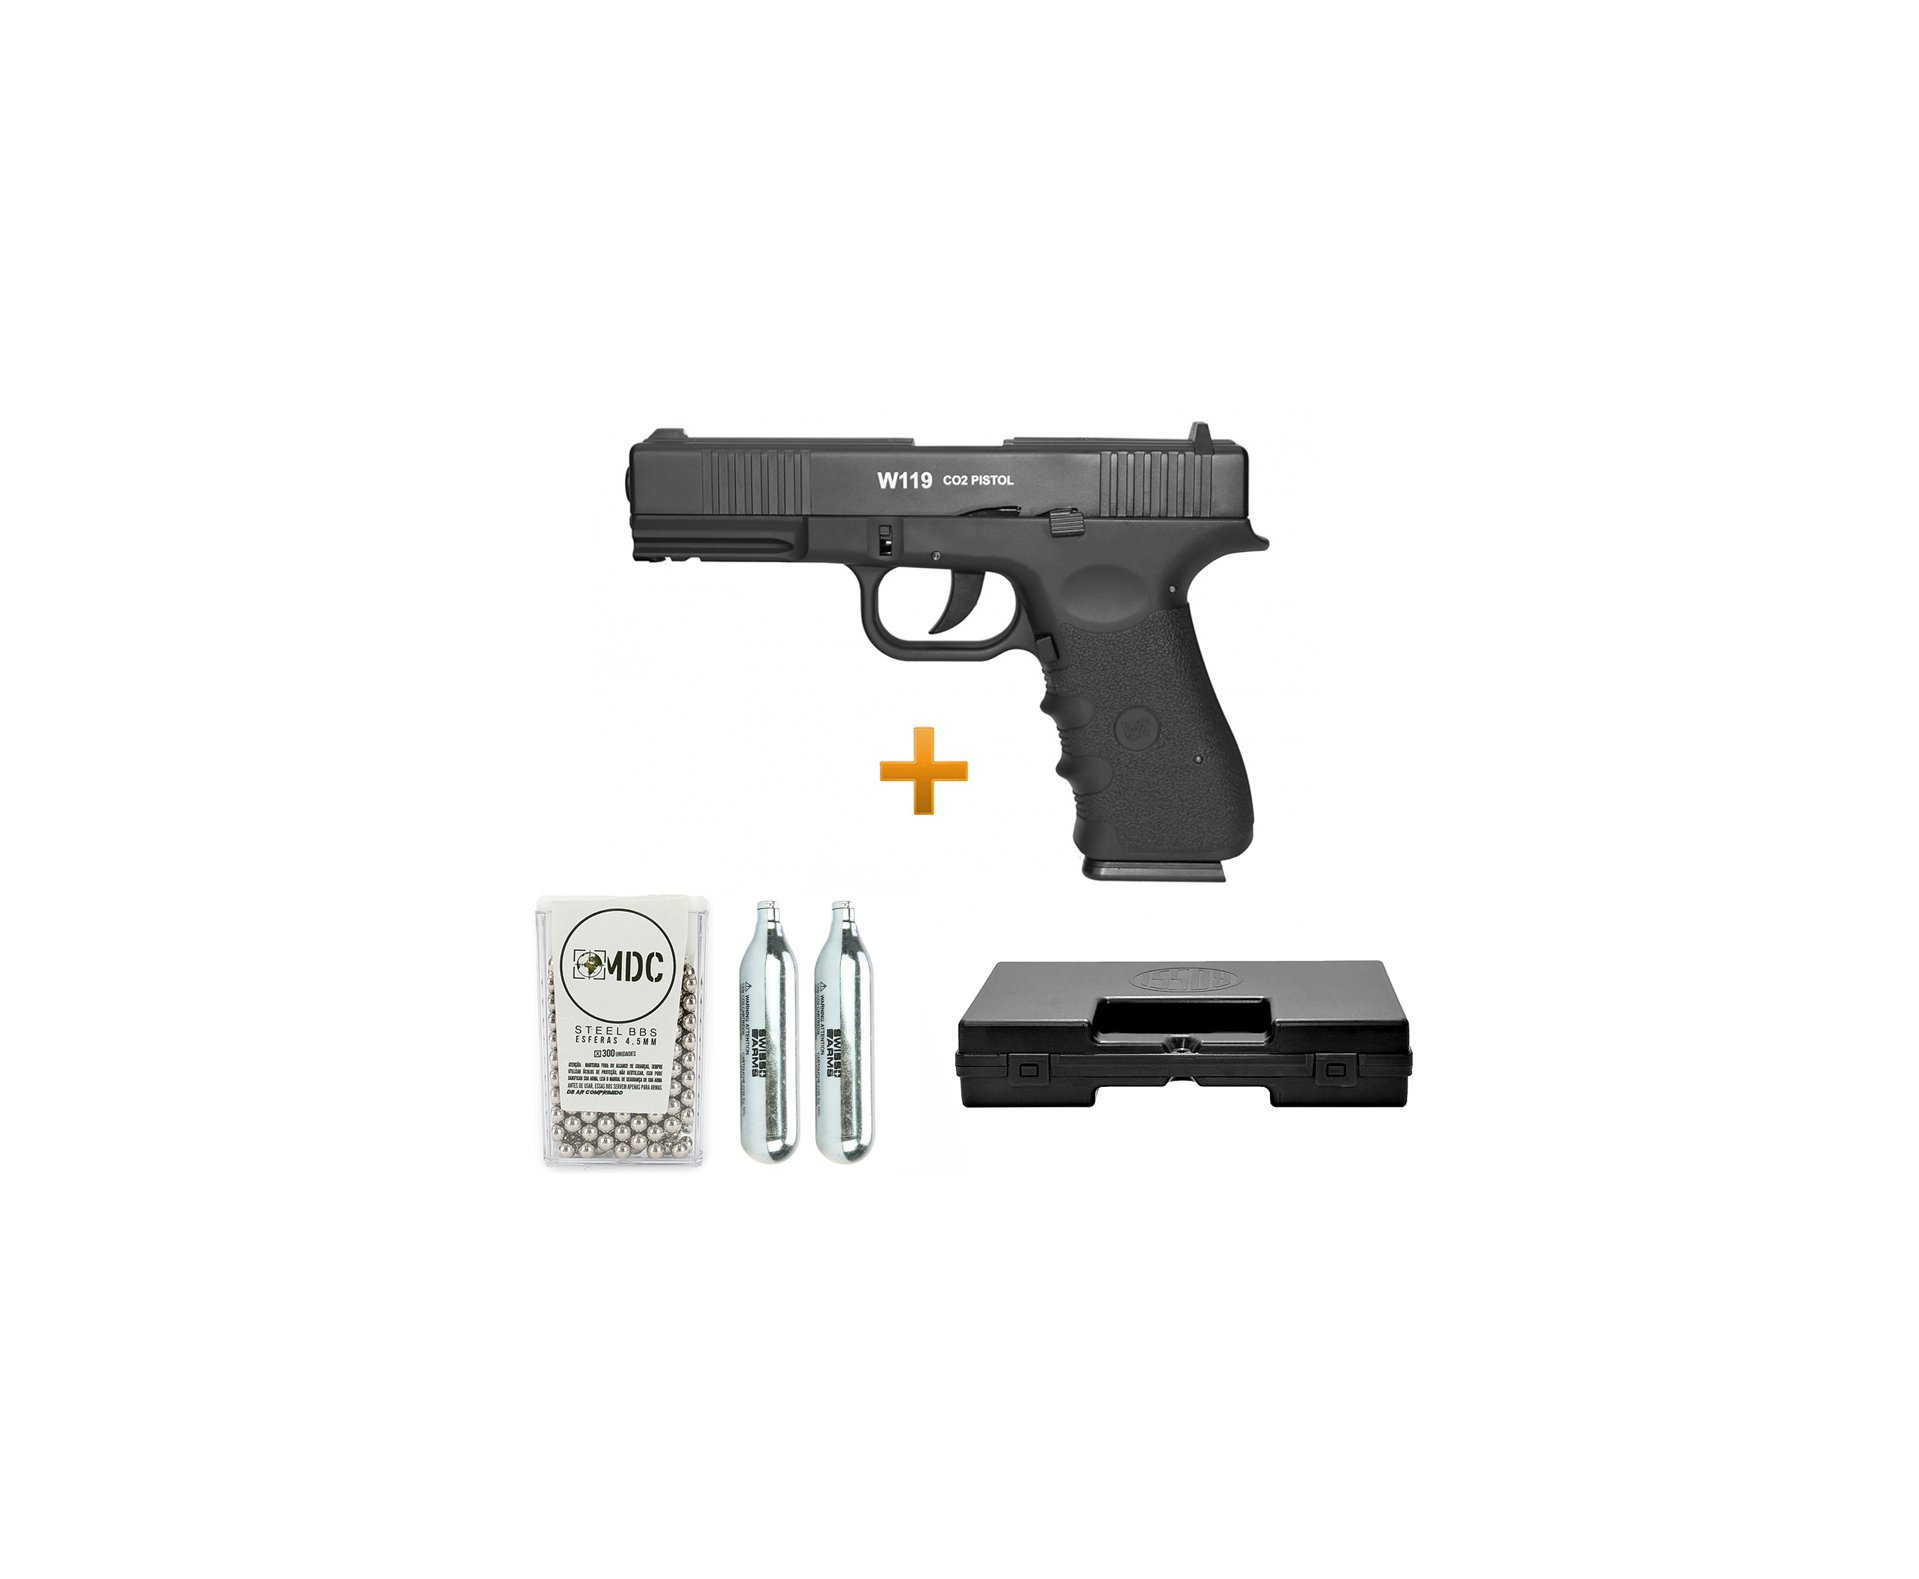 Pistola De Pressão Gas Co2 Wg Glock W119 Slide Metal Blowback 4,5mm + Case + Bbs + Co2